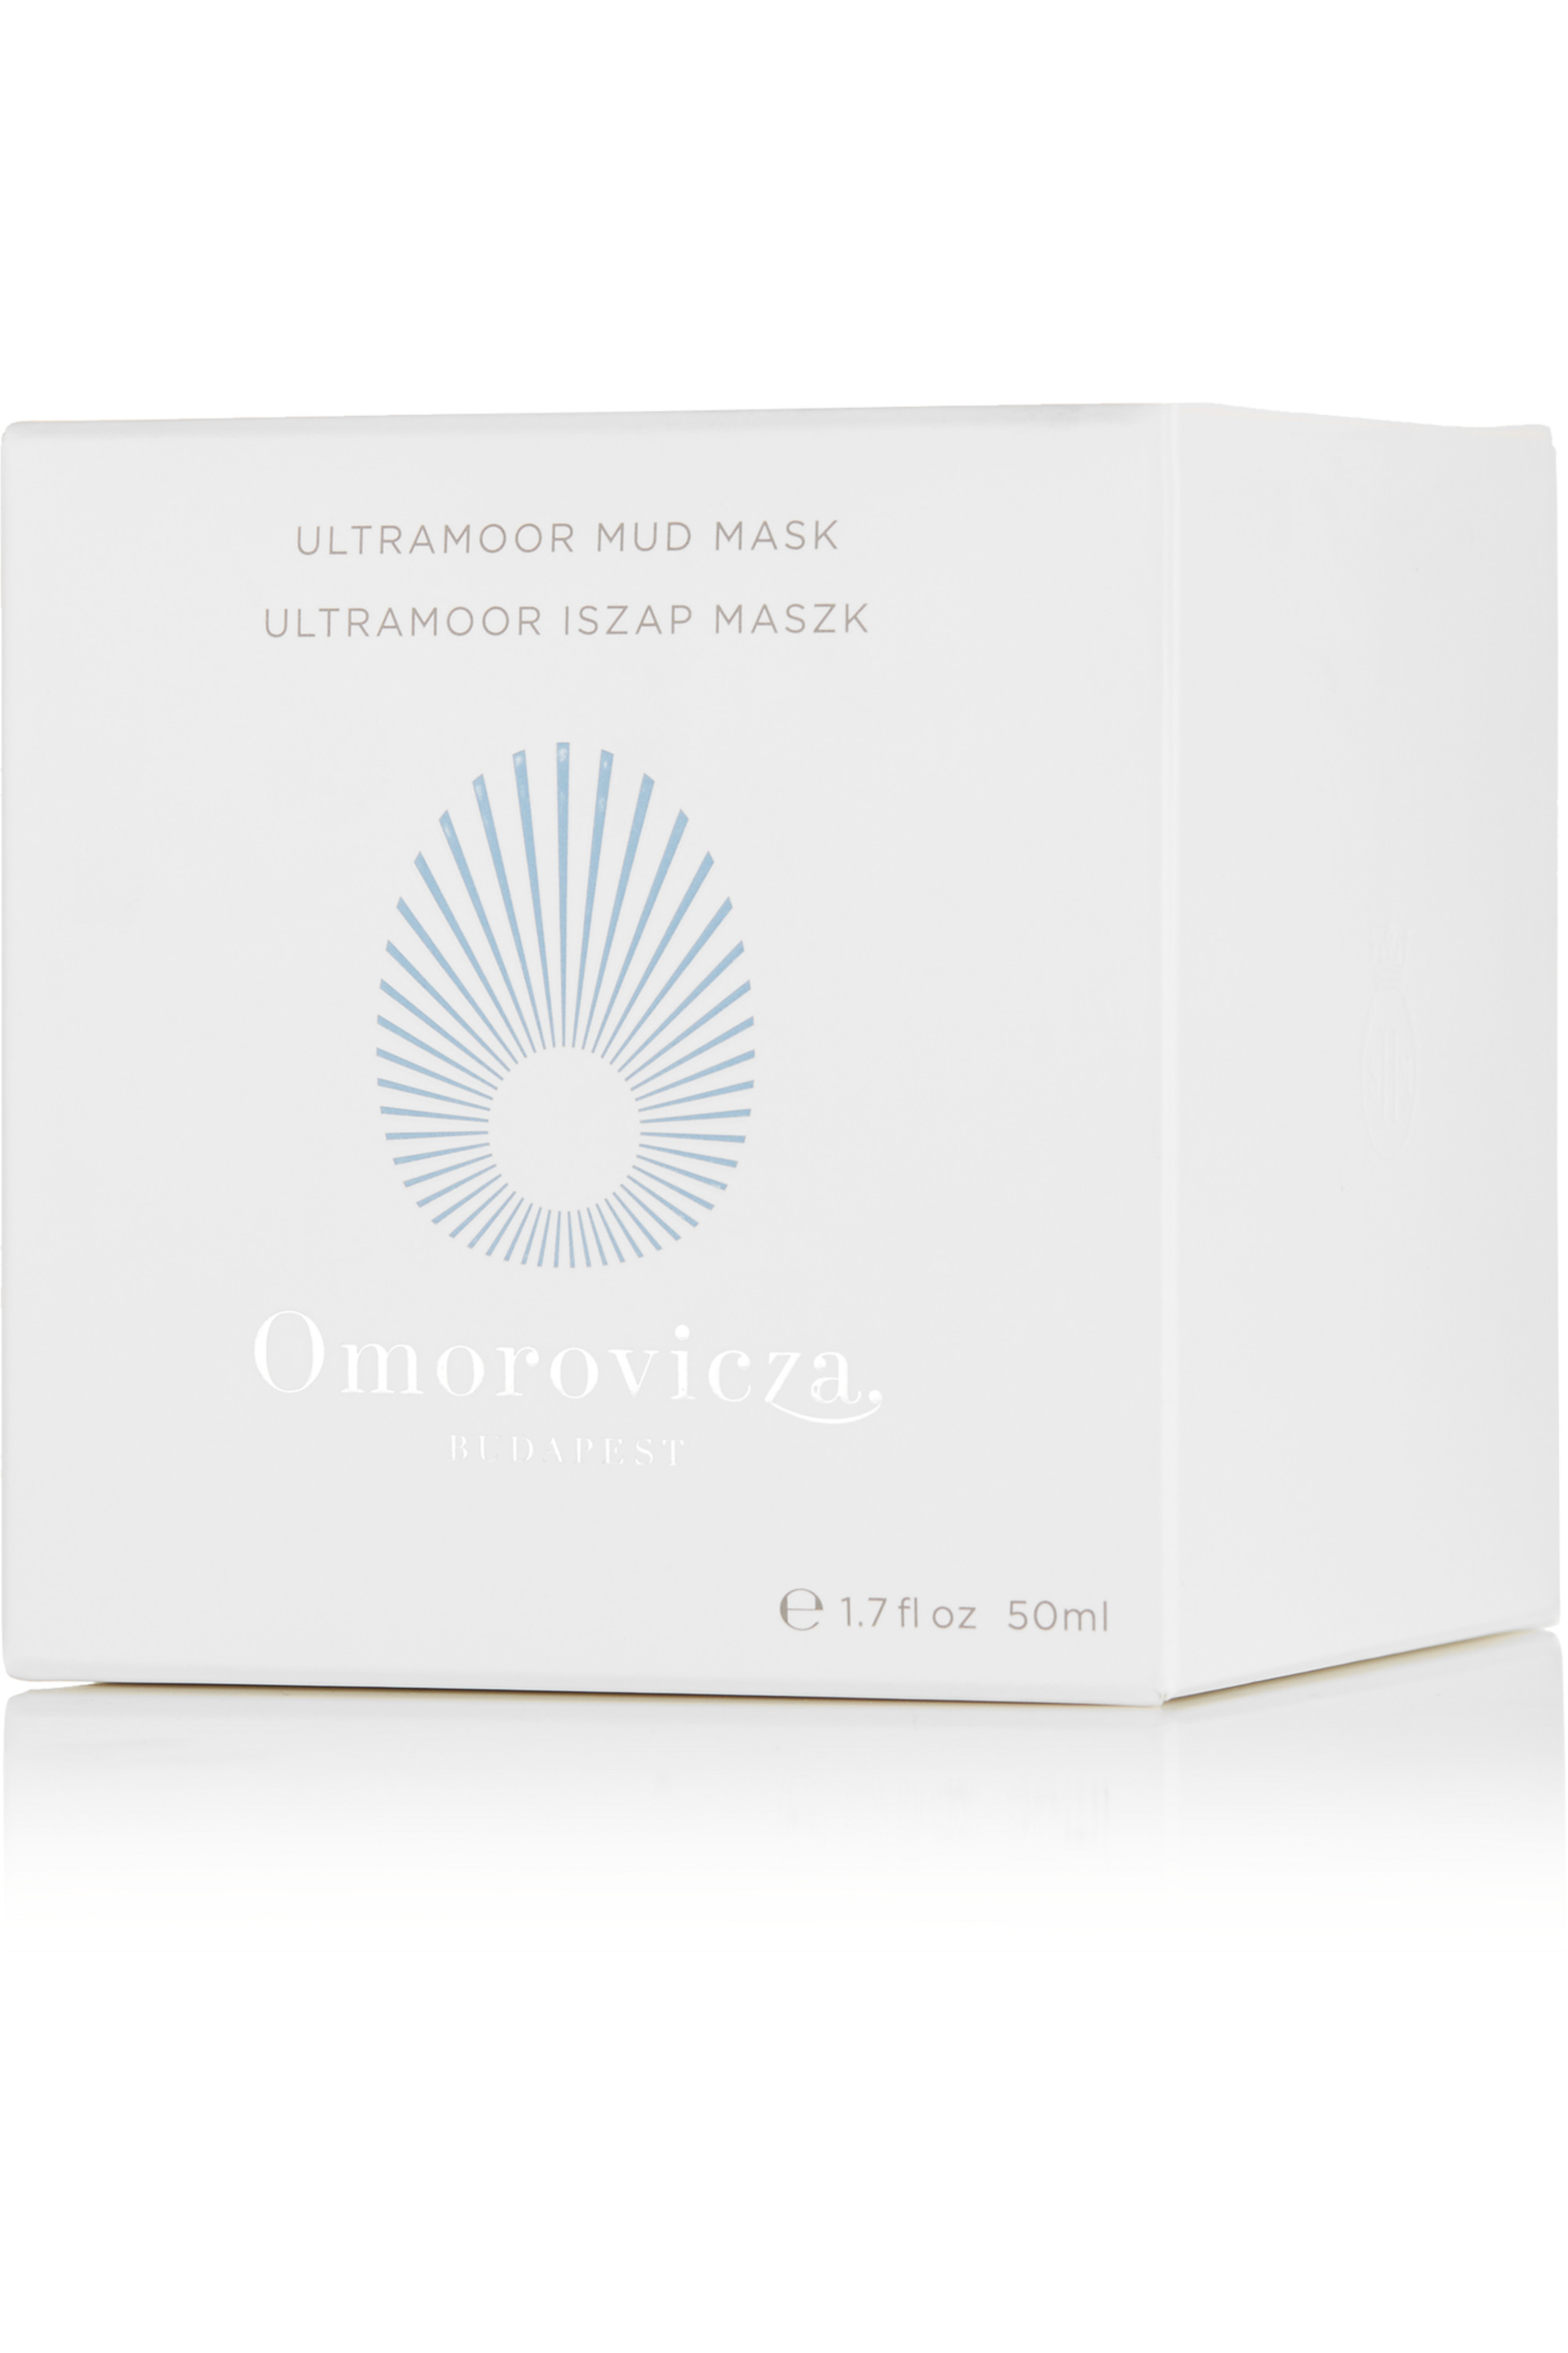 OMOROVICZA Ultramoor Mud Mask, 50ml